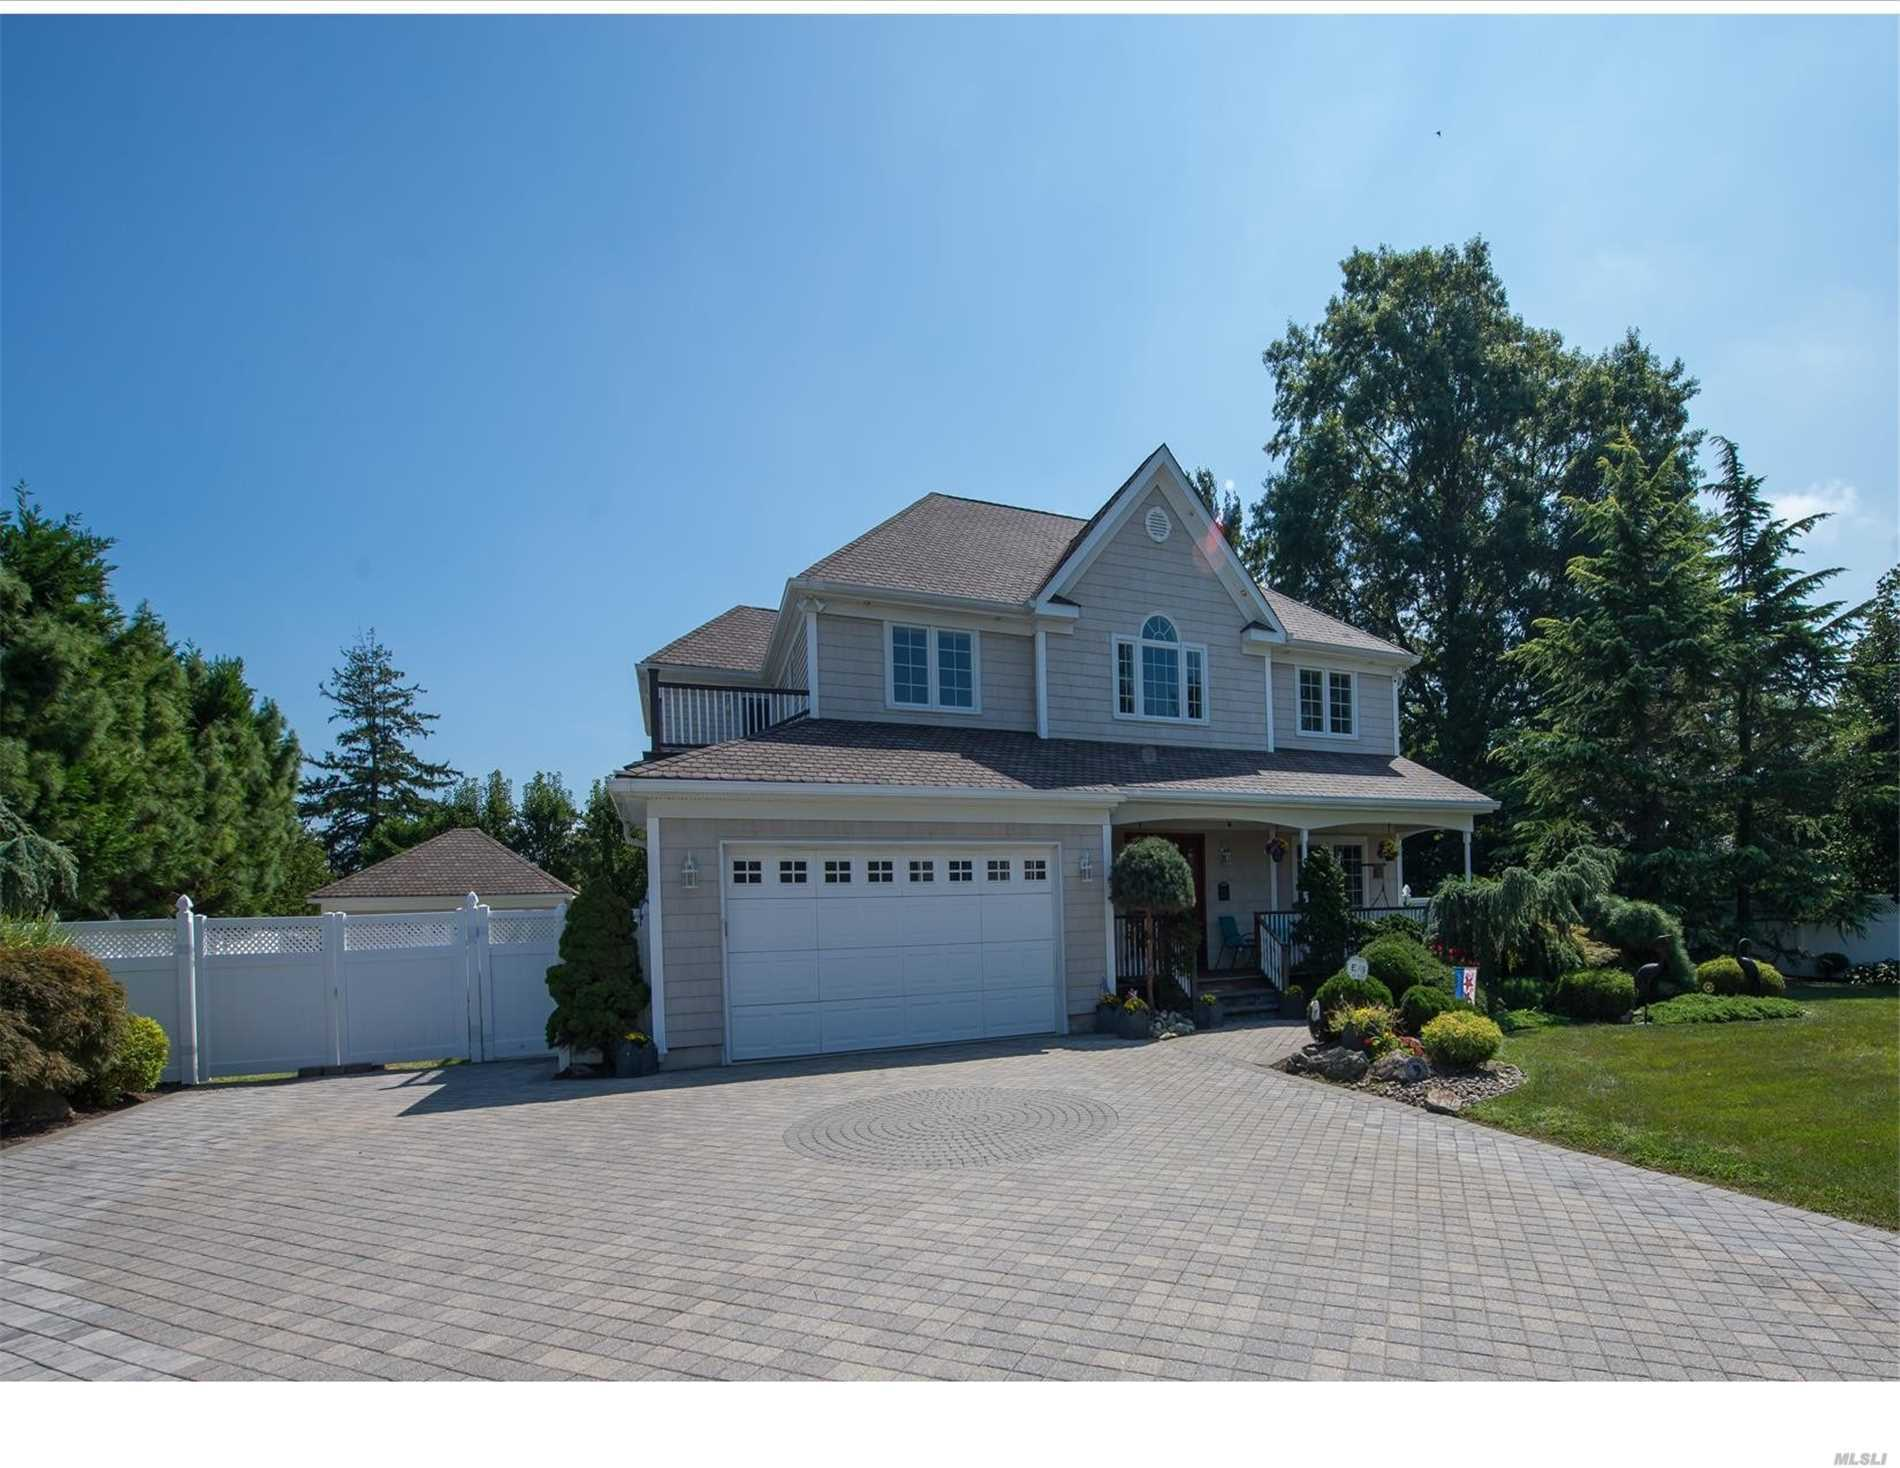 Custom Built In 2005, This Majestic Center Hall Colonial Is The Builders Own Home. Spacious Rooms Throughout & Loaded W/Amenities, This Home Will Satisfy The Most Demanding Consumer